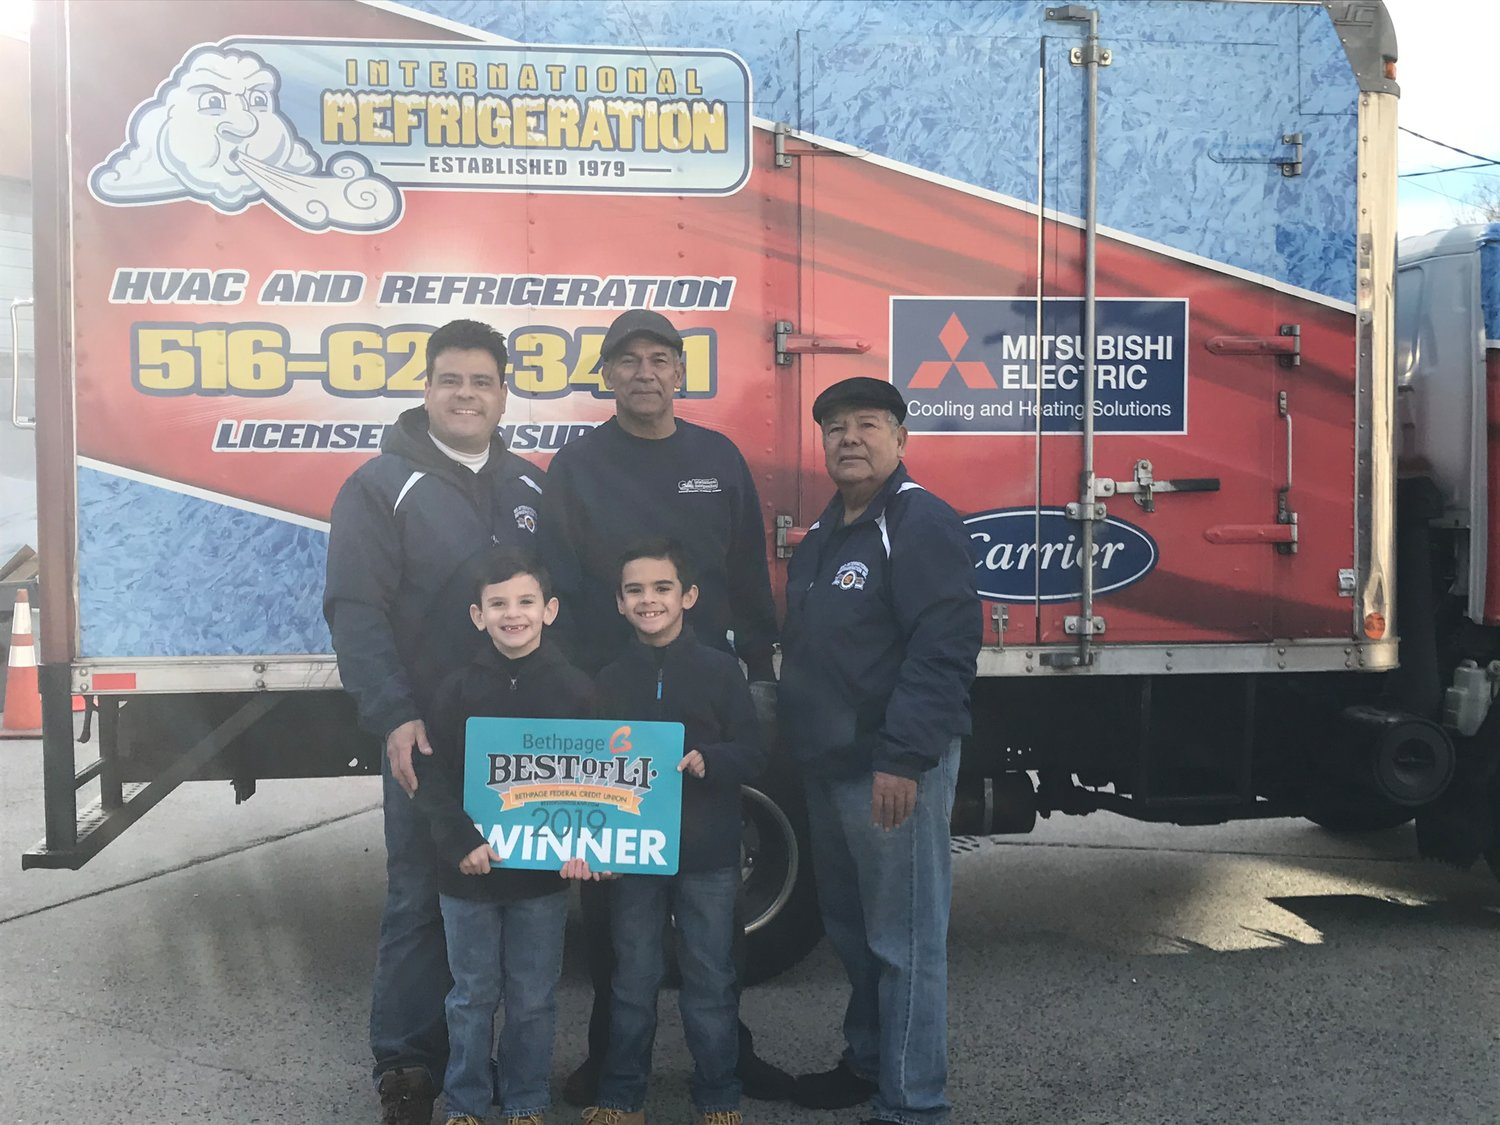 Steve Rios, top left, Rafael Rivera and Julio Rios of Rio International Refrigeration were awarded Long Island's best refrigeration company on their 40th anniversary. Someday Steve's sons, Alex, bottom left, and Damian may be running the company.